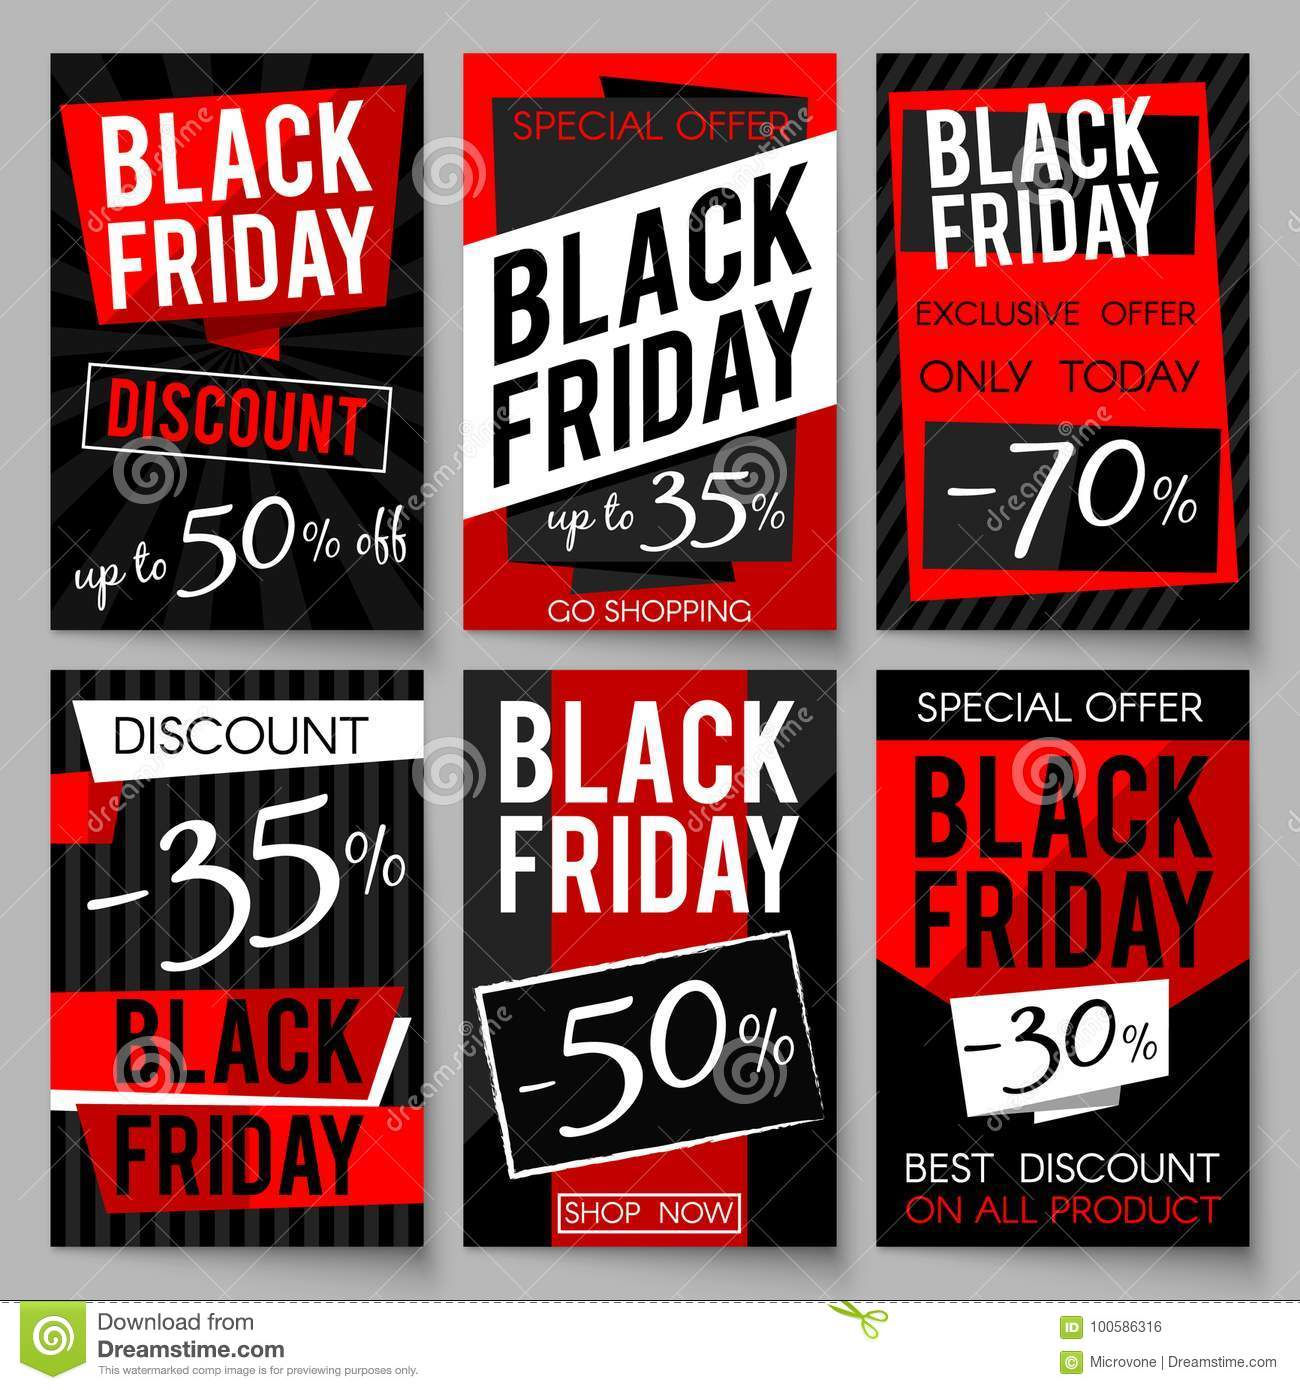 Black Friday Angebot Black Friday Verkaufswerbungsposter Vector Schablone Mit Bestem